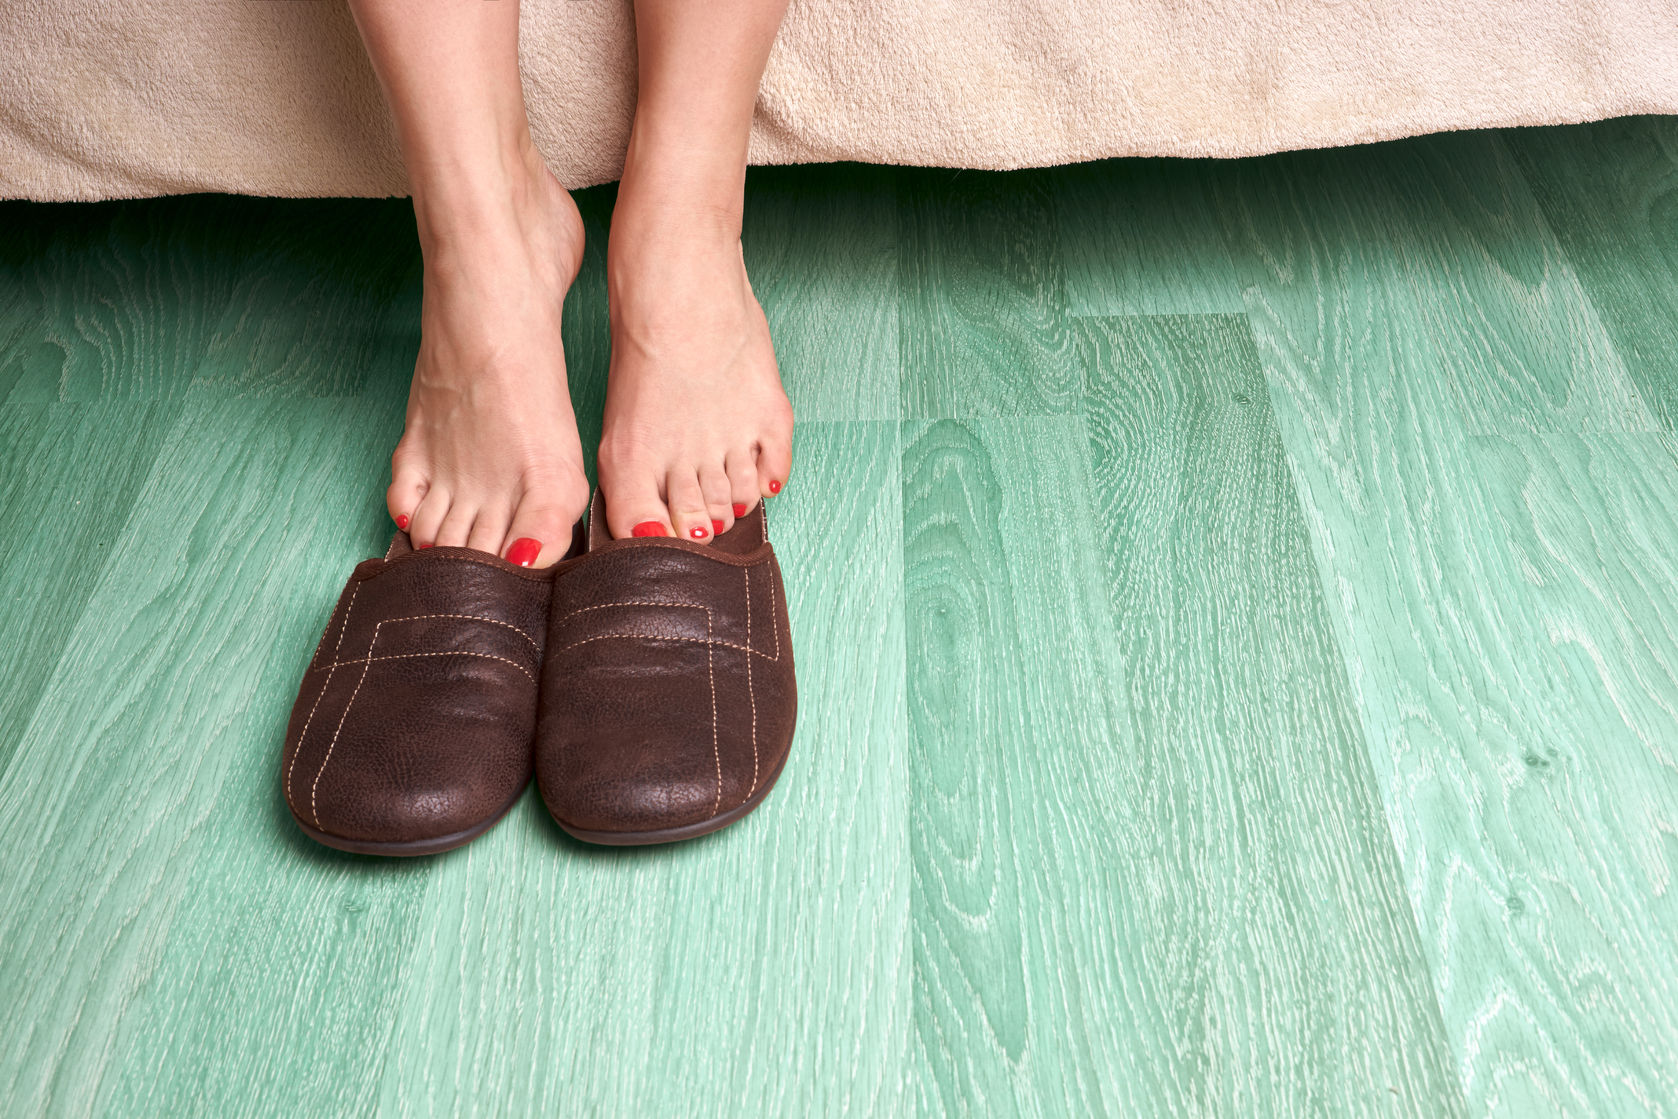 Female Feet in Slippers Image